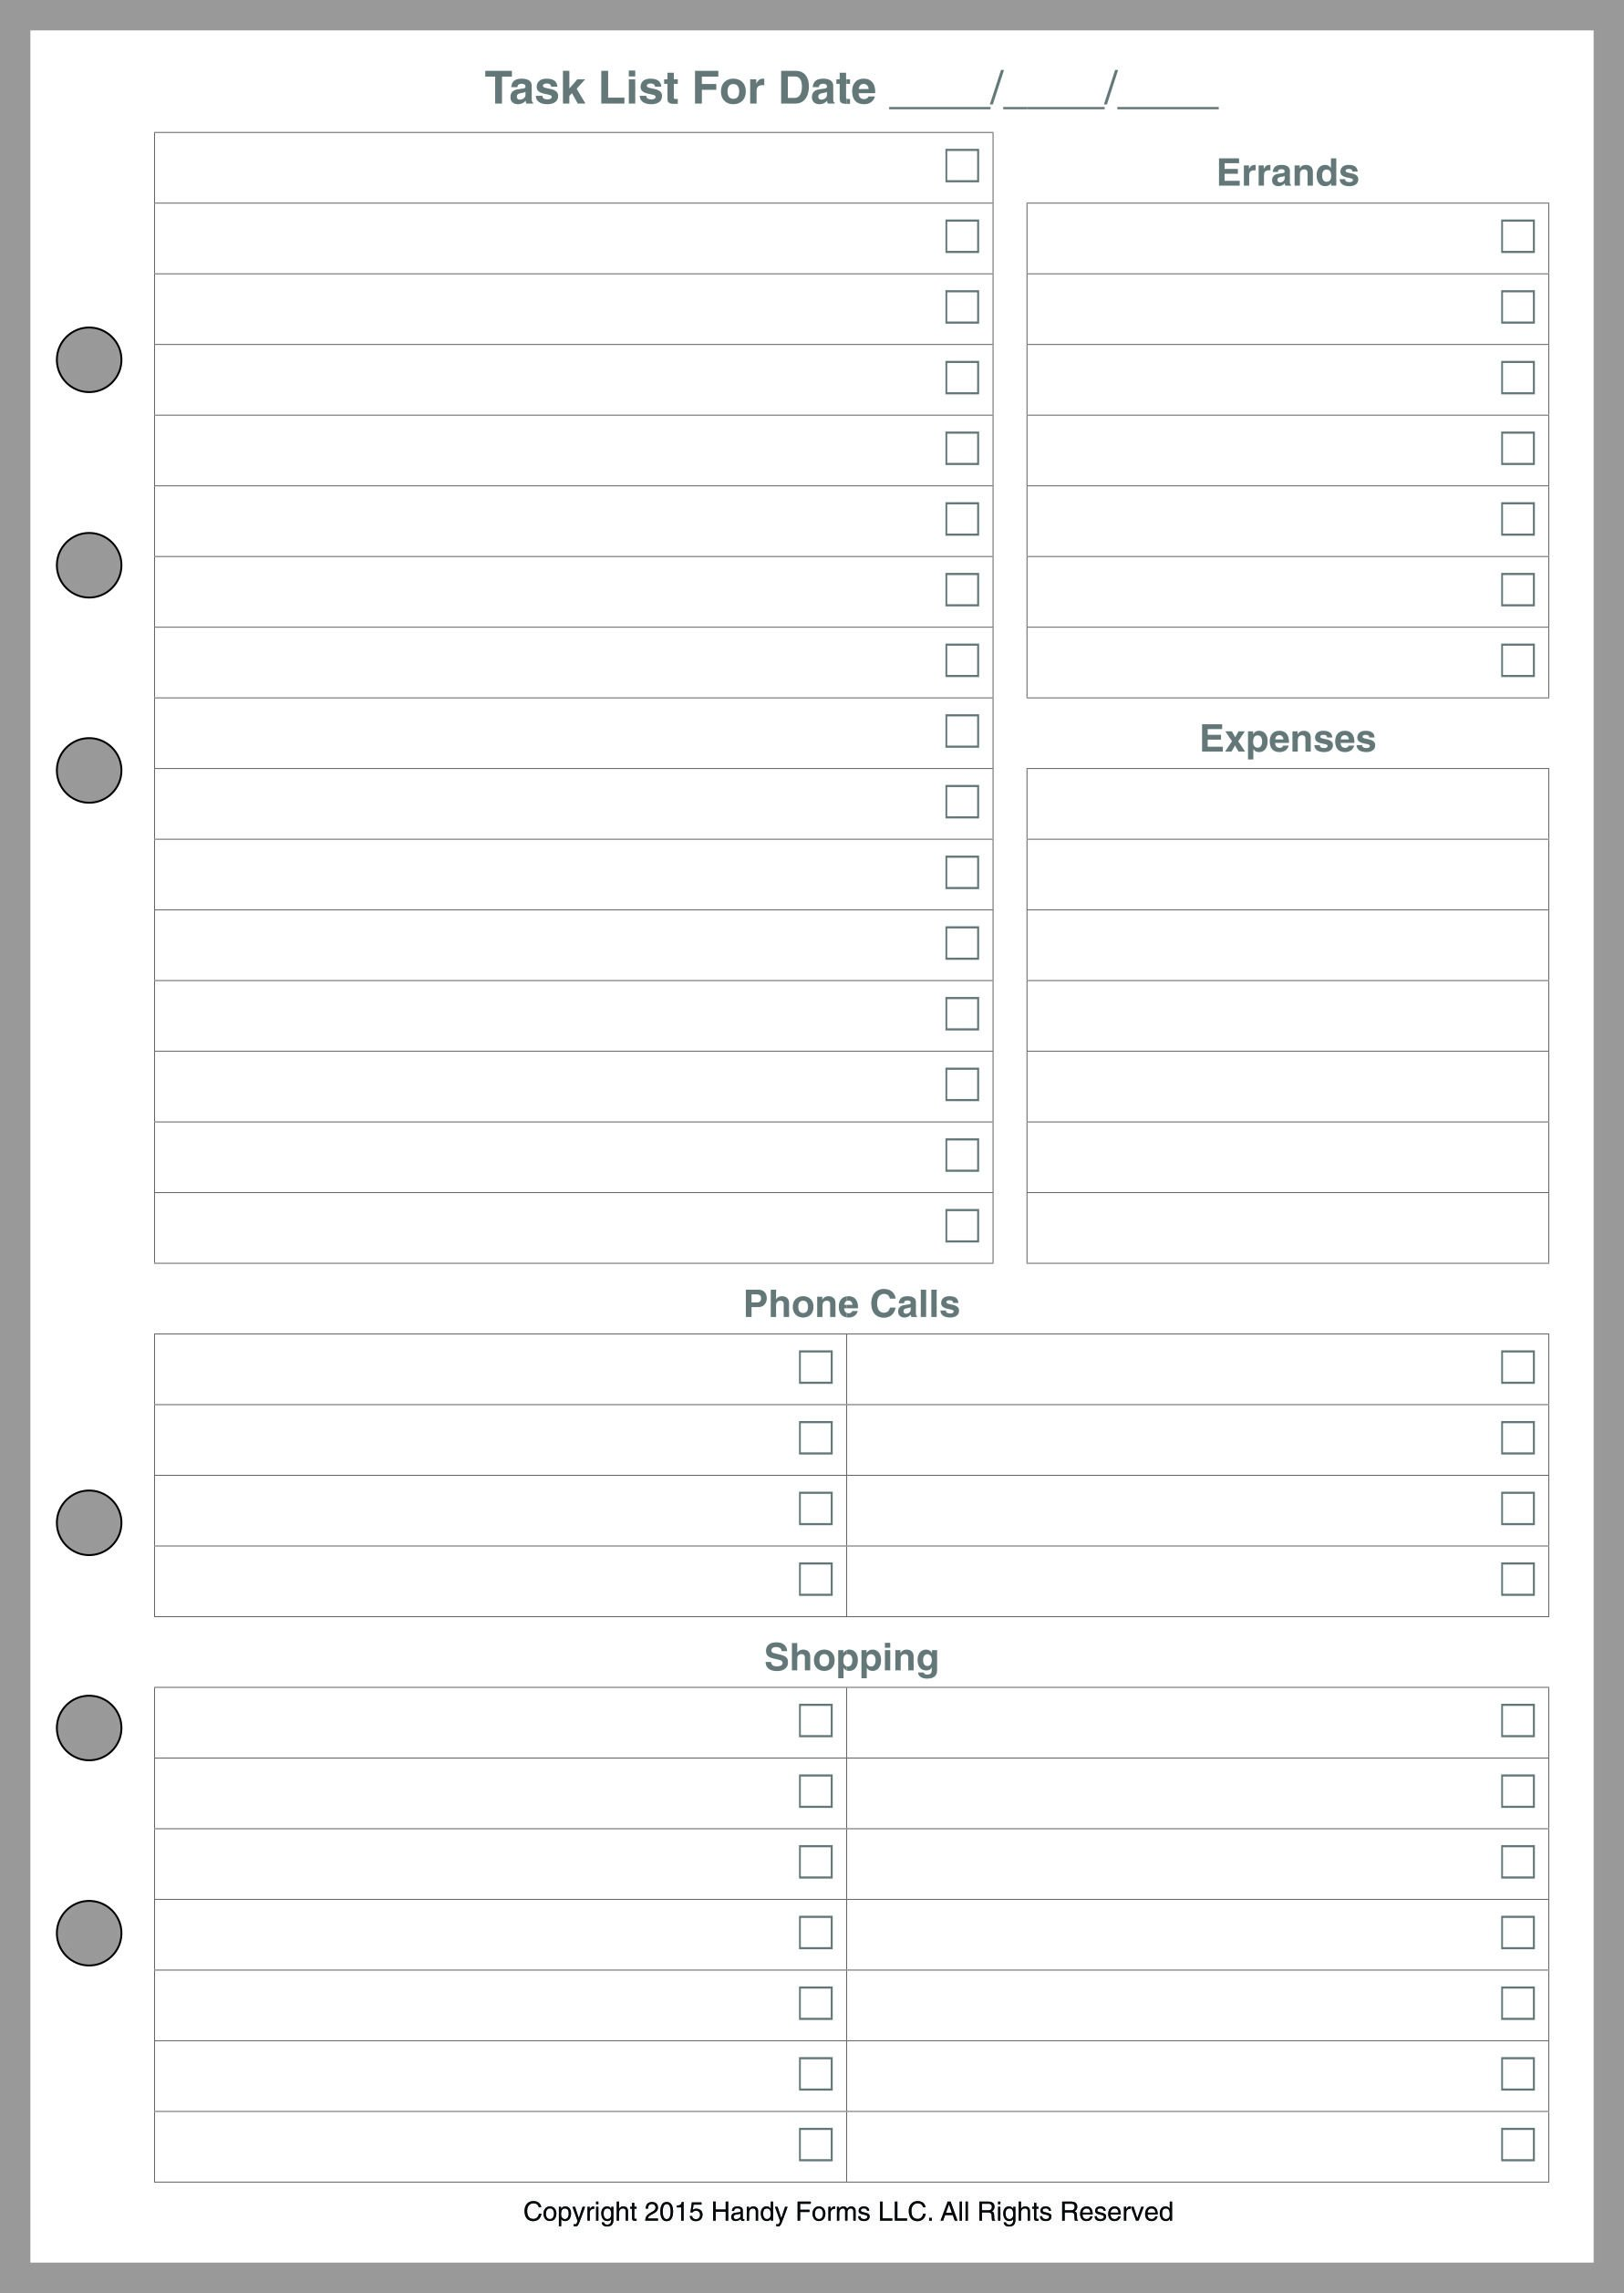 A5 Size Daily Task Planner Insert, Sized and Punched for 6-Ring A5 Notebooks by Filofax, Mulberry, Kikki K, TMI, and others. Sheet Size 5.83'' x 8.27'' (148mm x 210mm)